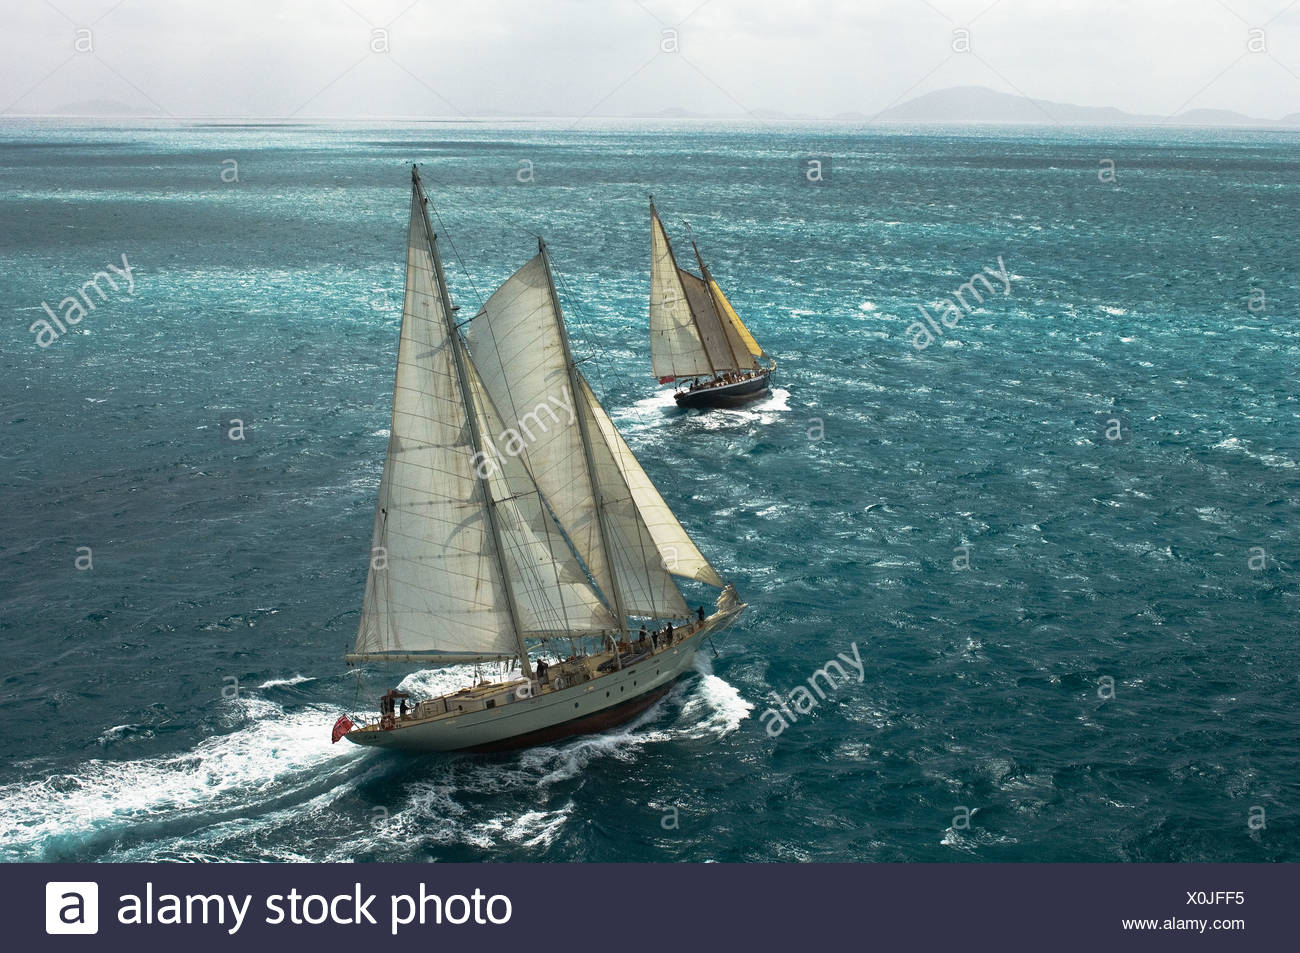 The sailing vessels Ocean Star and Argo sailing in a stiff breeze. - Stock Image